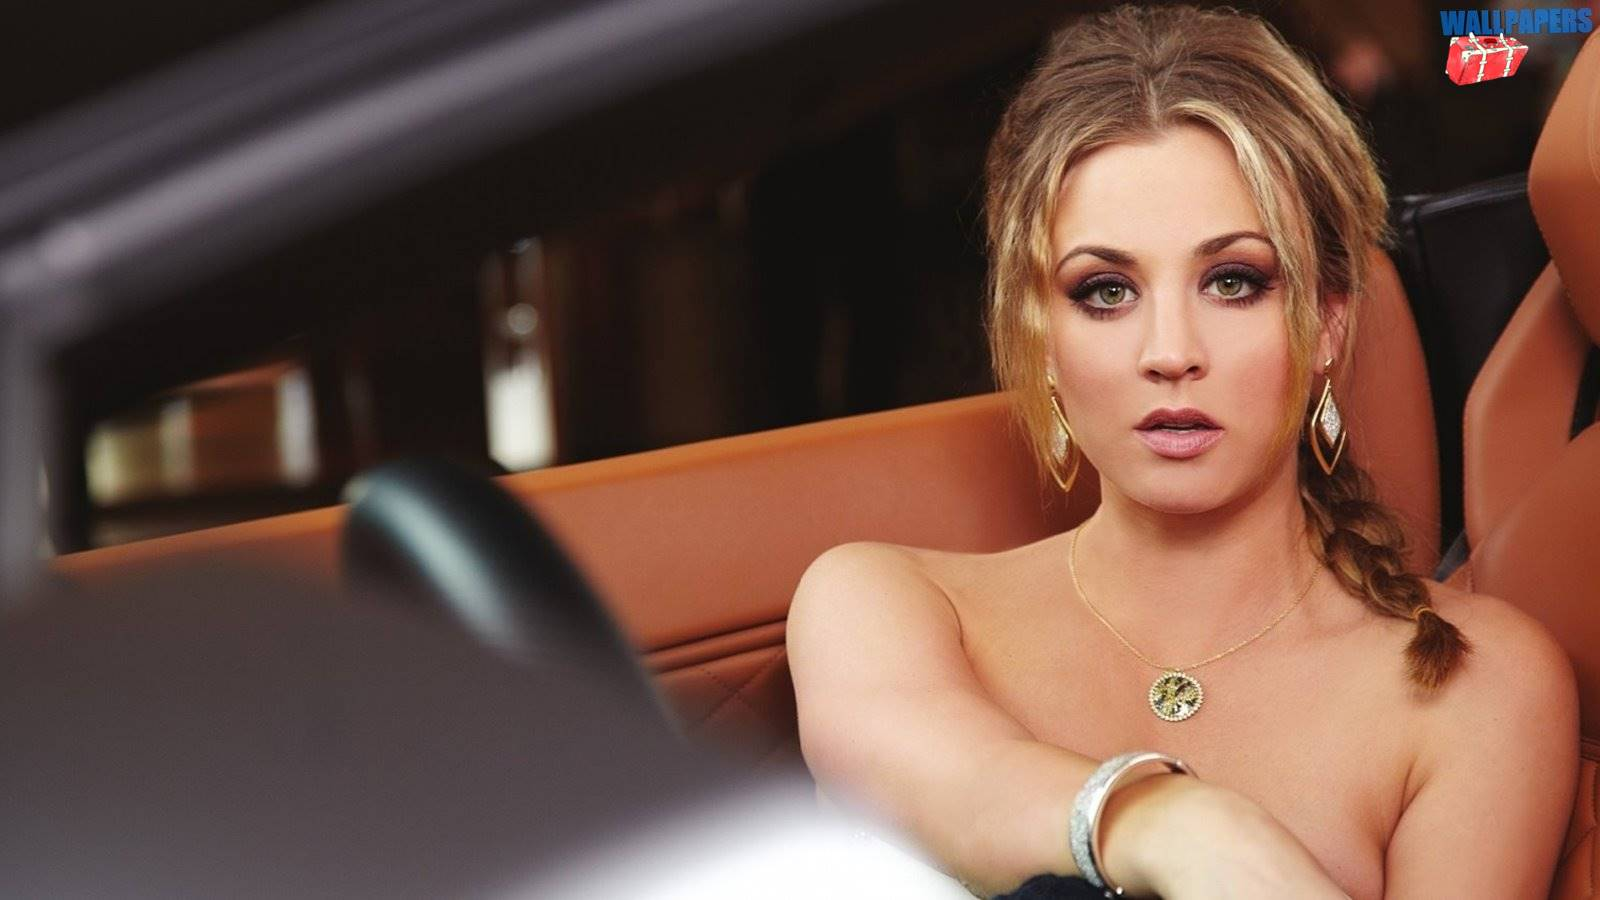 Kaley cuoco 2 wallpaper 1600215900 Desktop Widescreen 1600x900